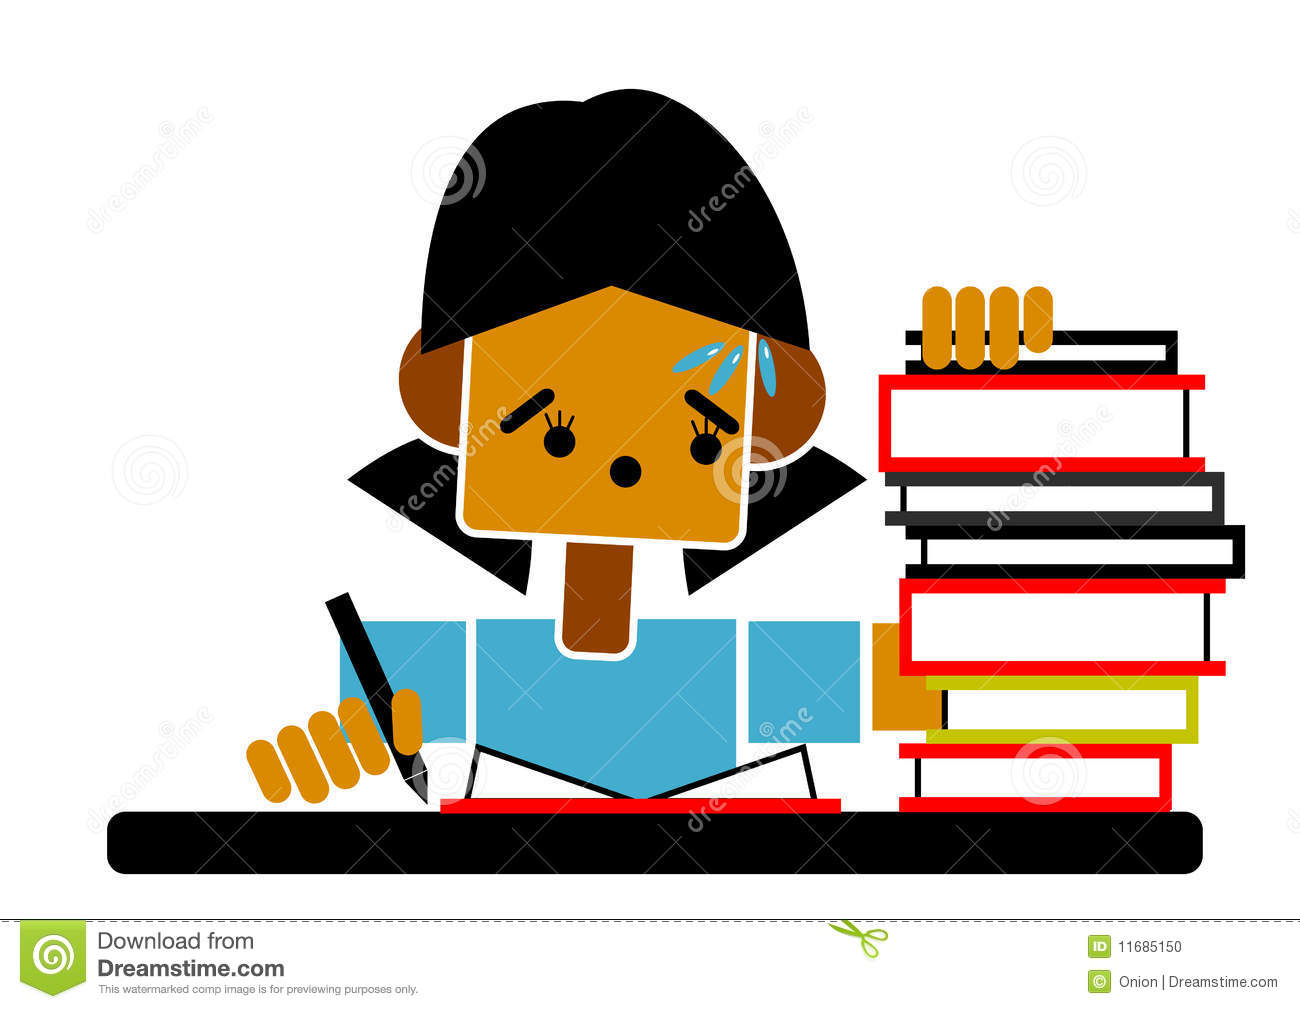 Student turning in homework clipart graphic stock Homework graphics graphic stock